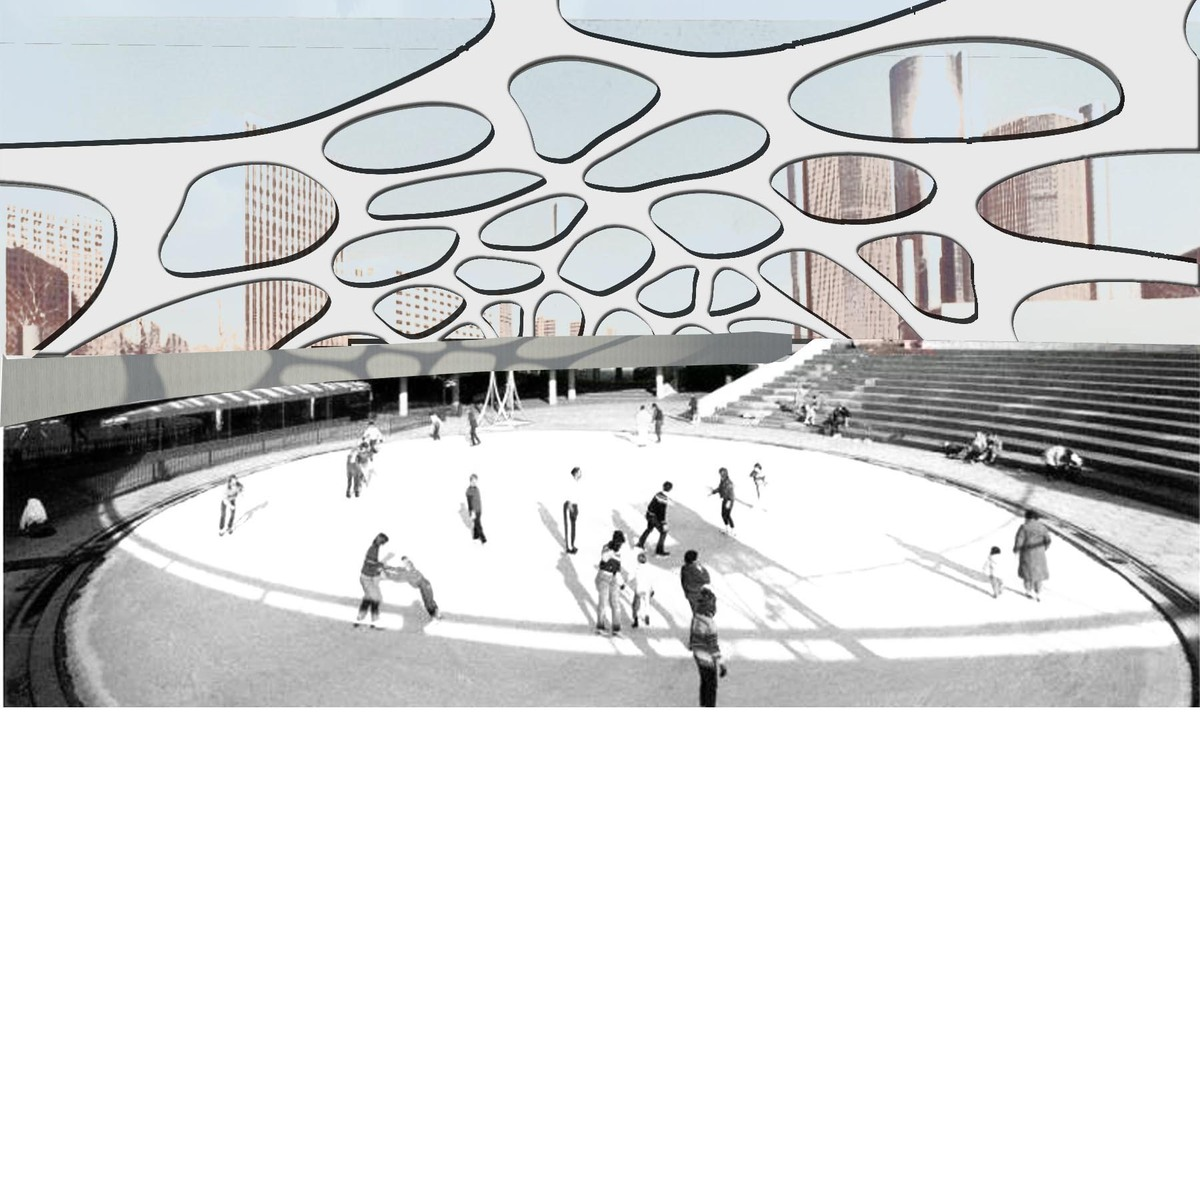 Existing Amphitheater, transformed into a new interior gallery.